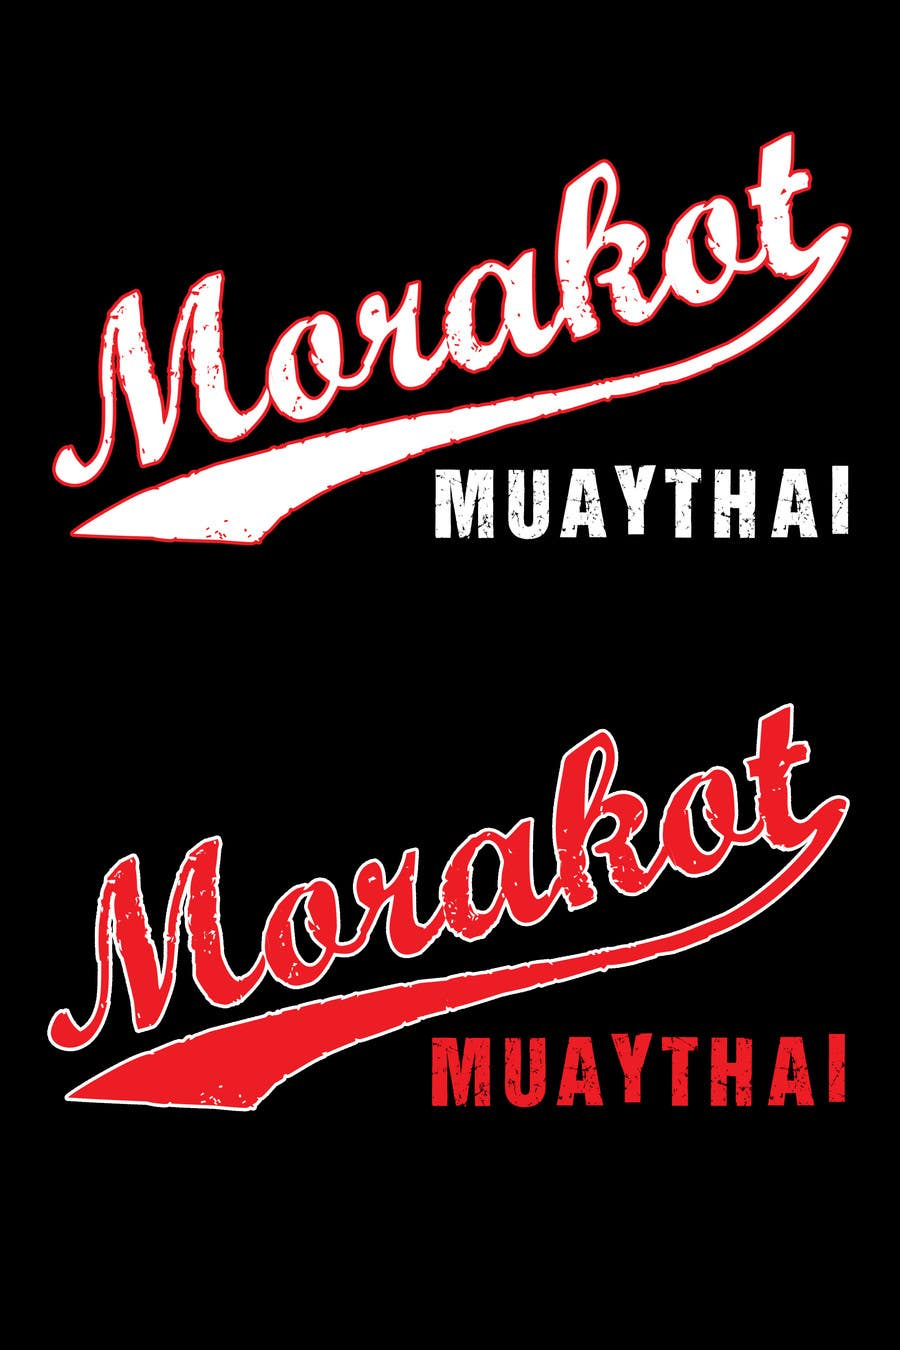 Design t shirt melbourne - Contest Entry 51 For Muay Thai T Shirt Design For A Gym In Melbourne